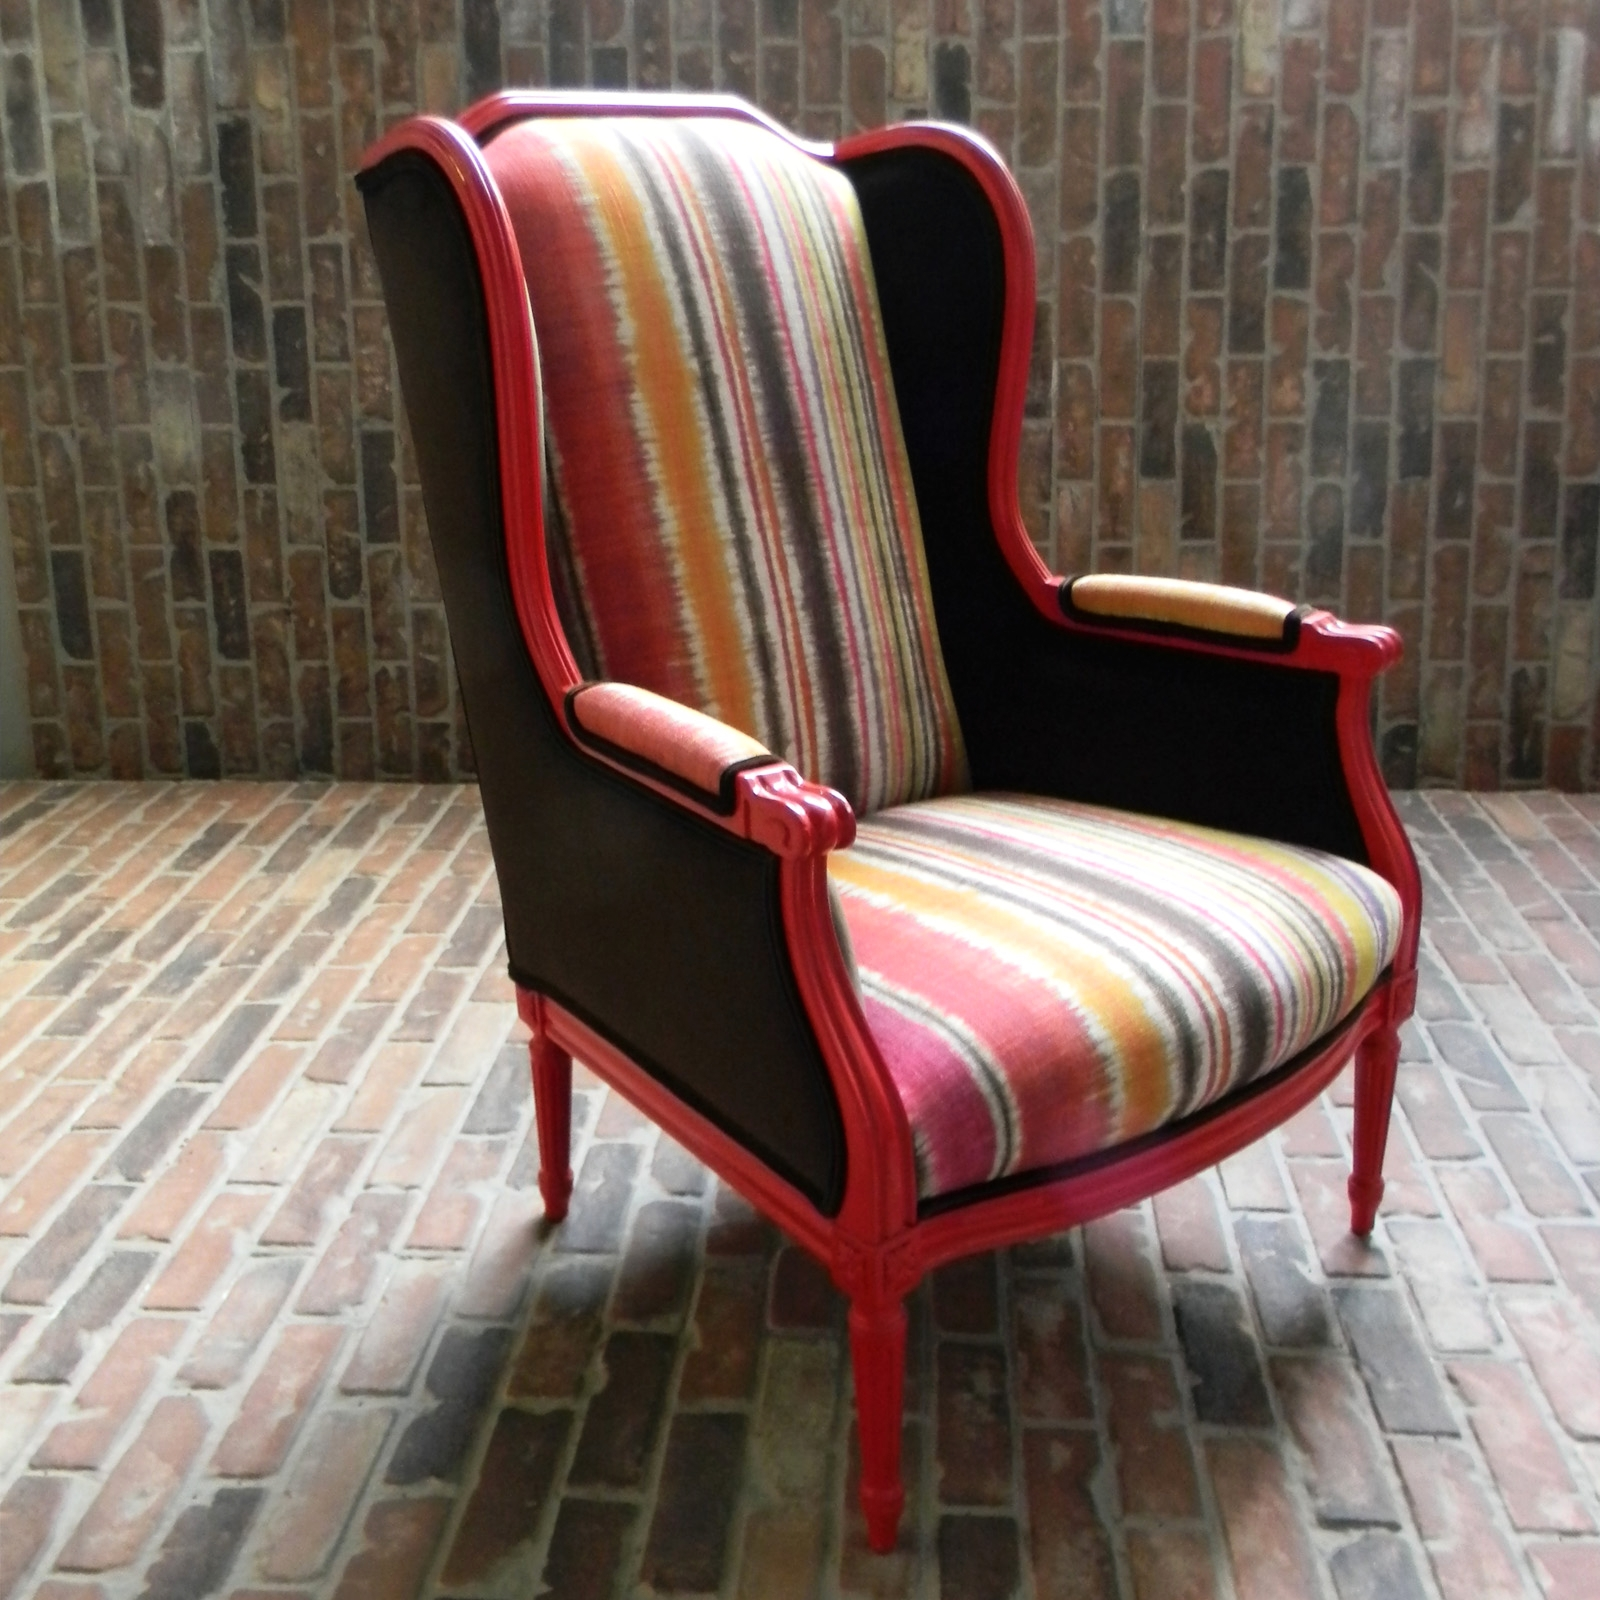 Recovered Interior Sunset Chair